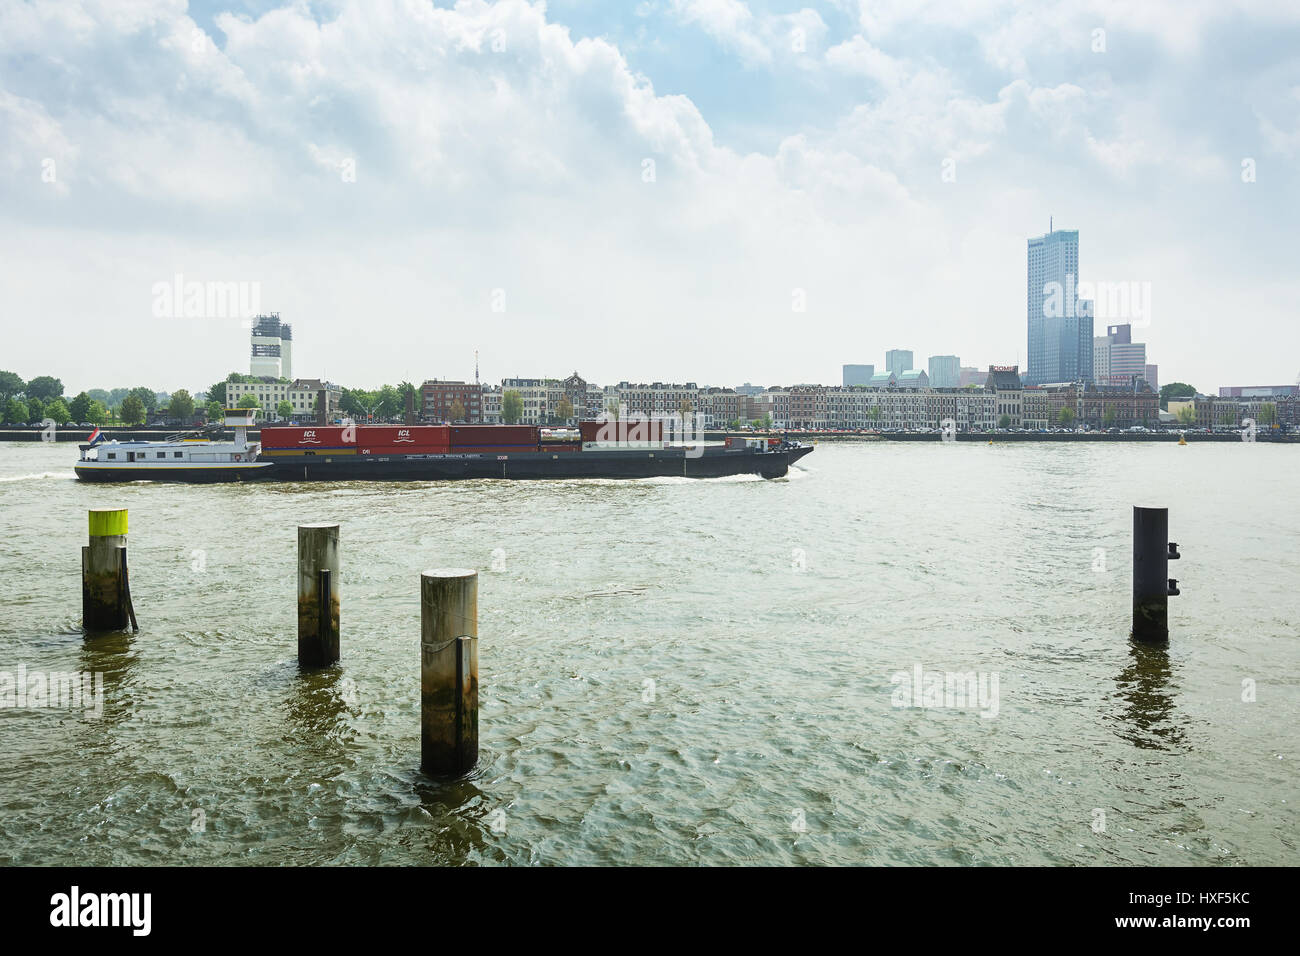 Rotterdam, Netherlands – May 26, 2016: Container ship passes the Nieuwe Maas river in Rotterdam Stock Photo